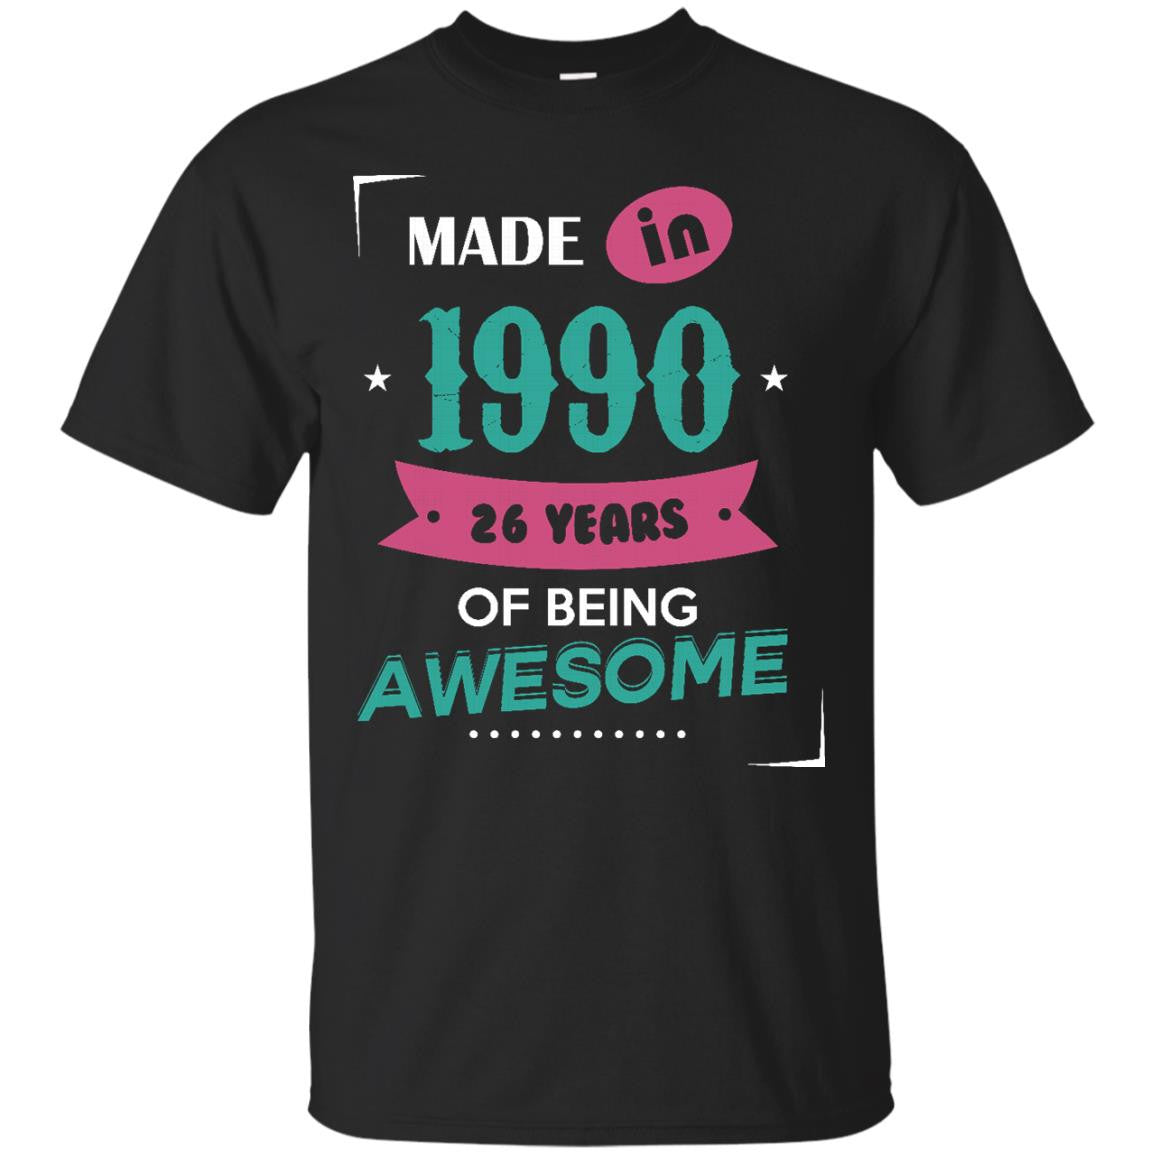 1990 Shirts Made In 1990 Of Being Awesome T-shirts Hoodies Sweatshirts